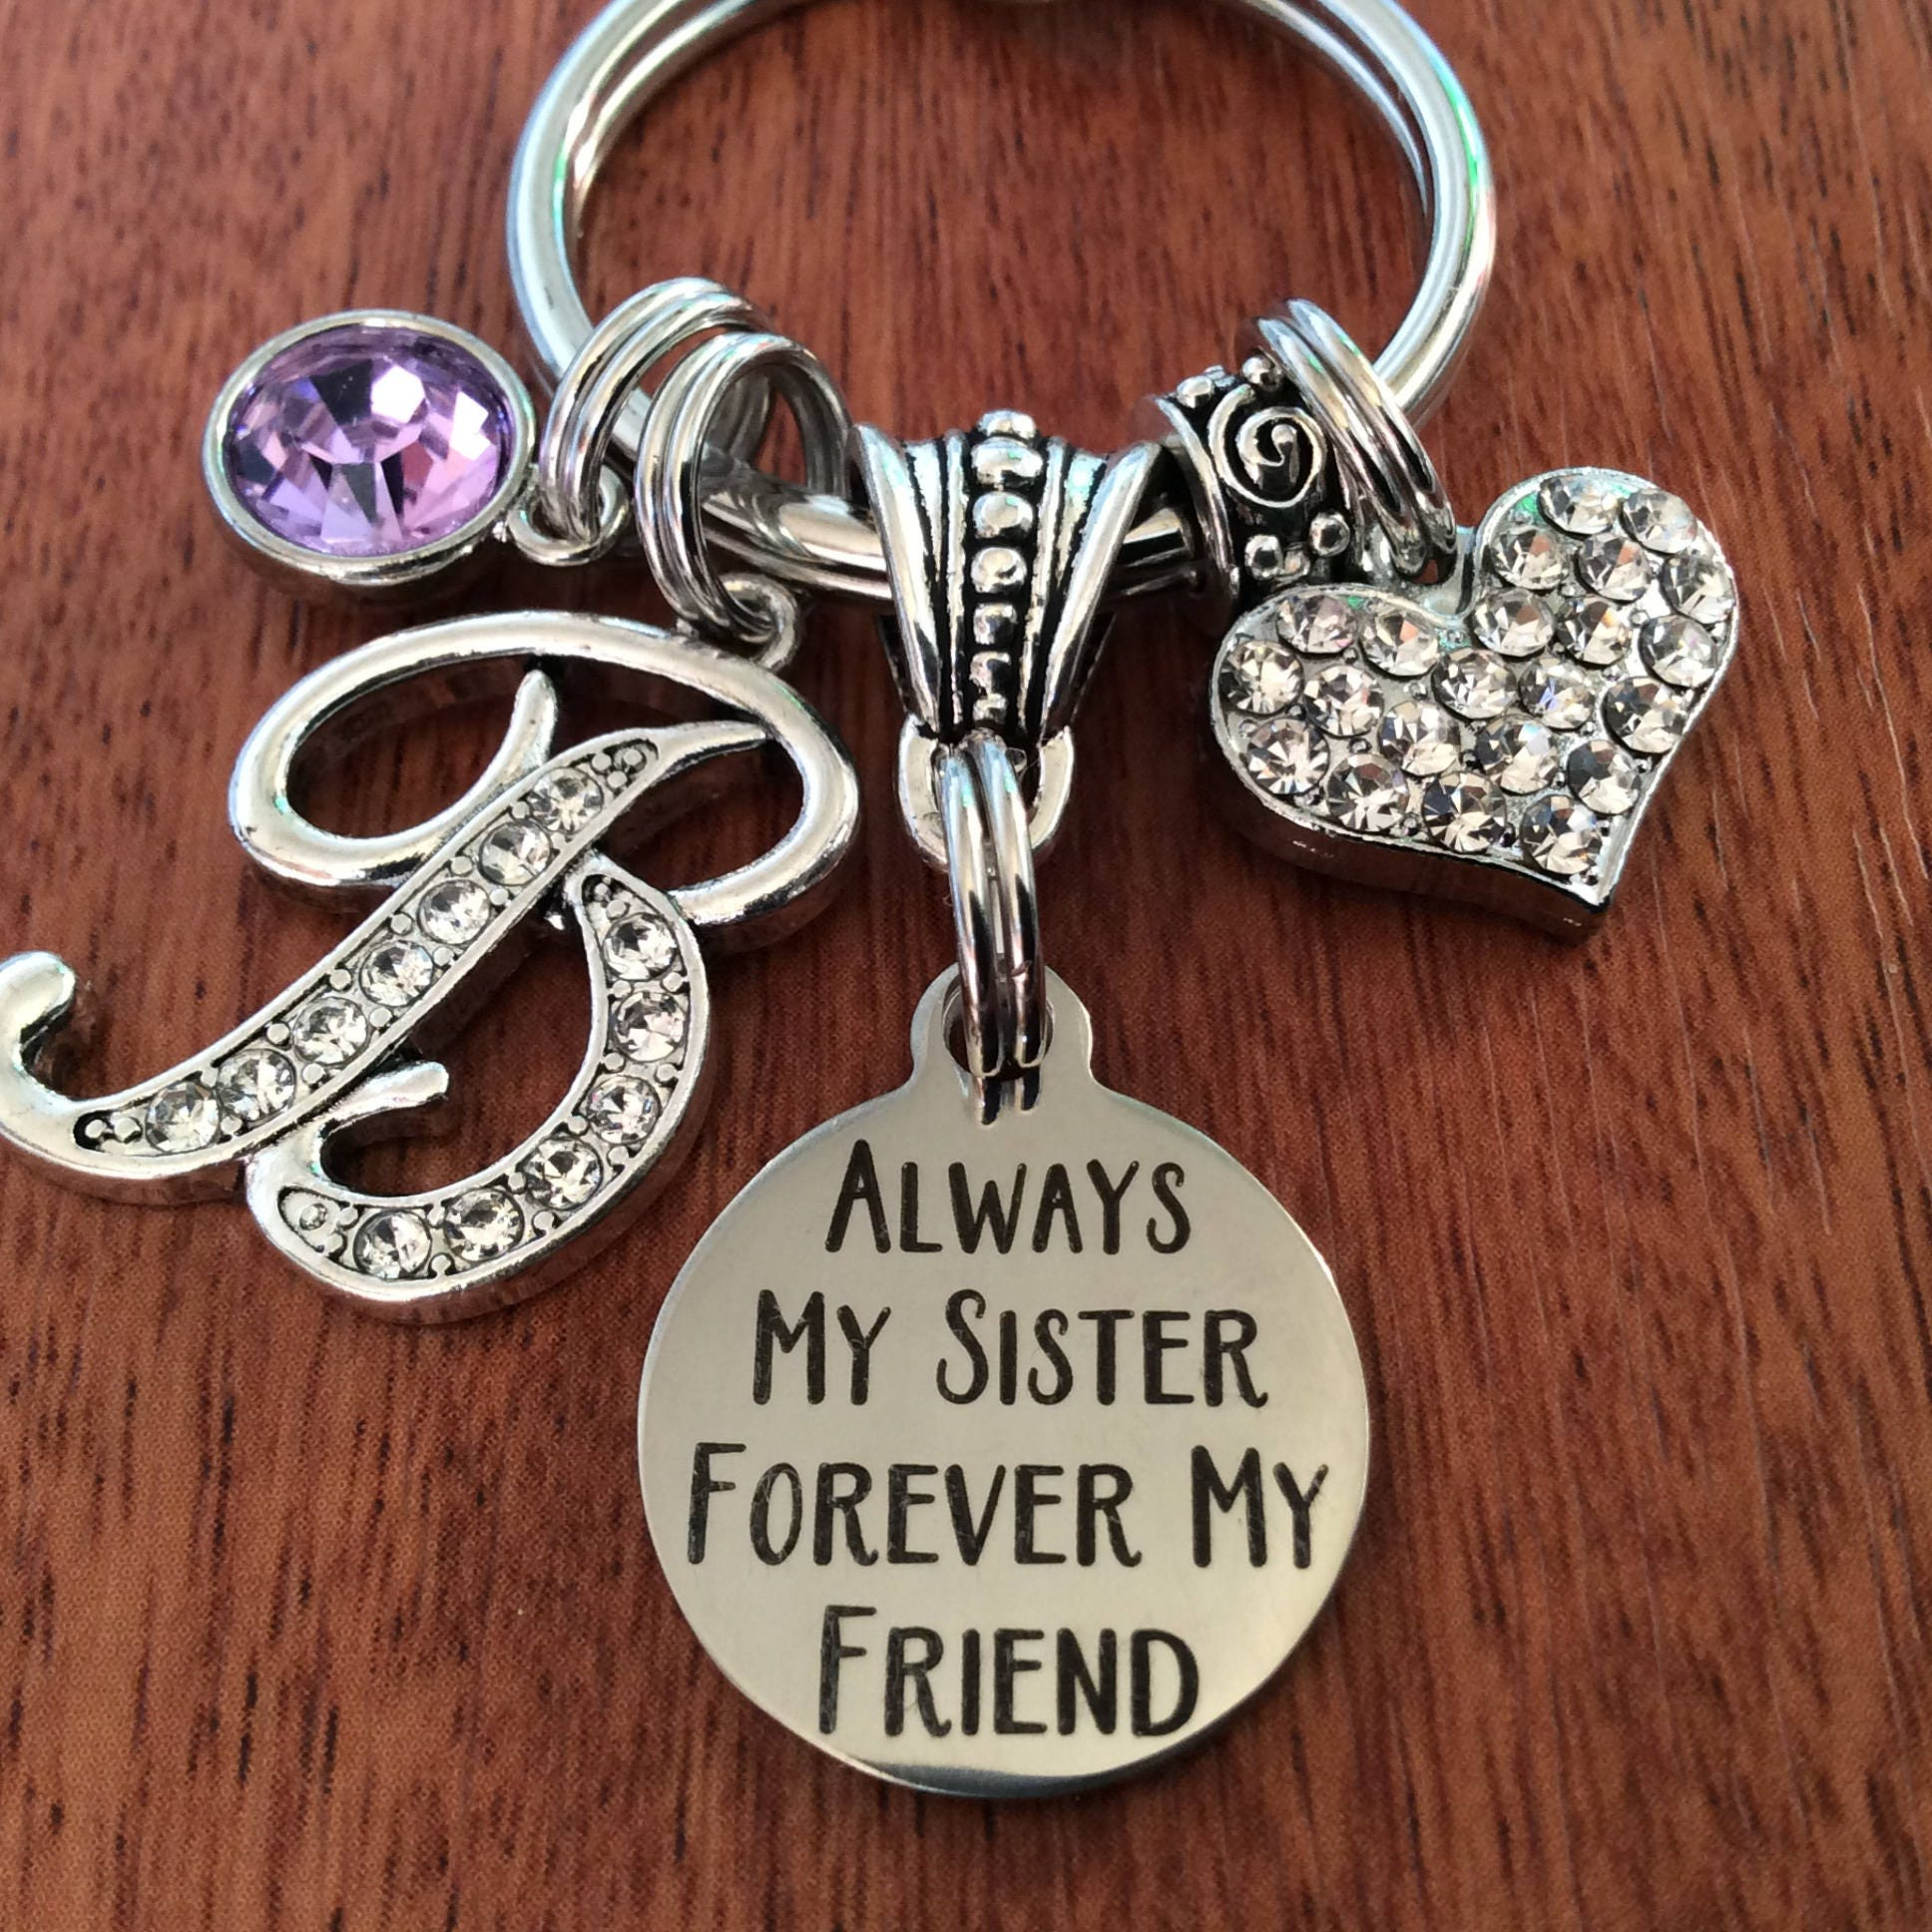 Handmade Glass Print /'First My Mother /& Forever My Friend/' Charm Chain Keyring